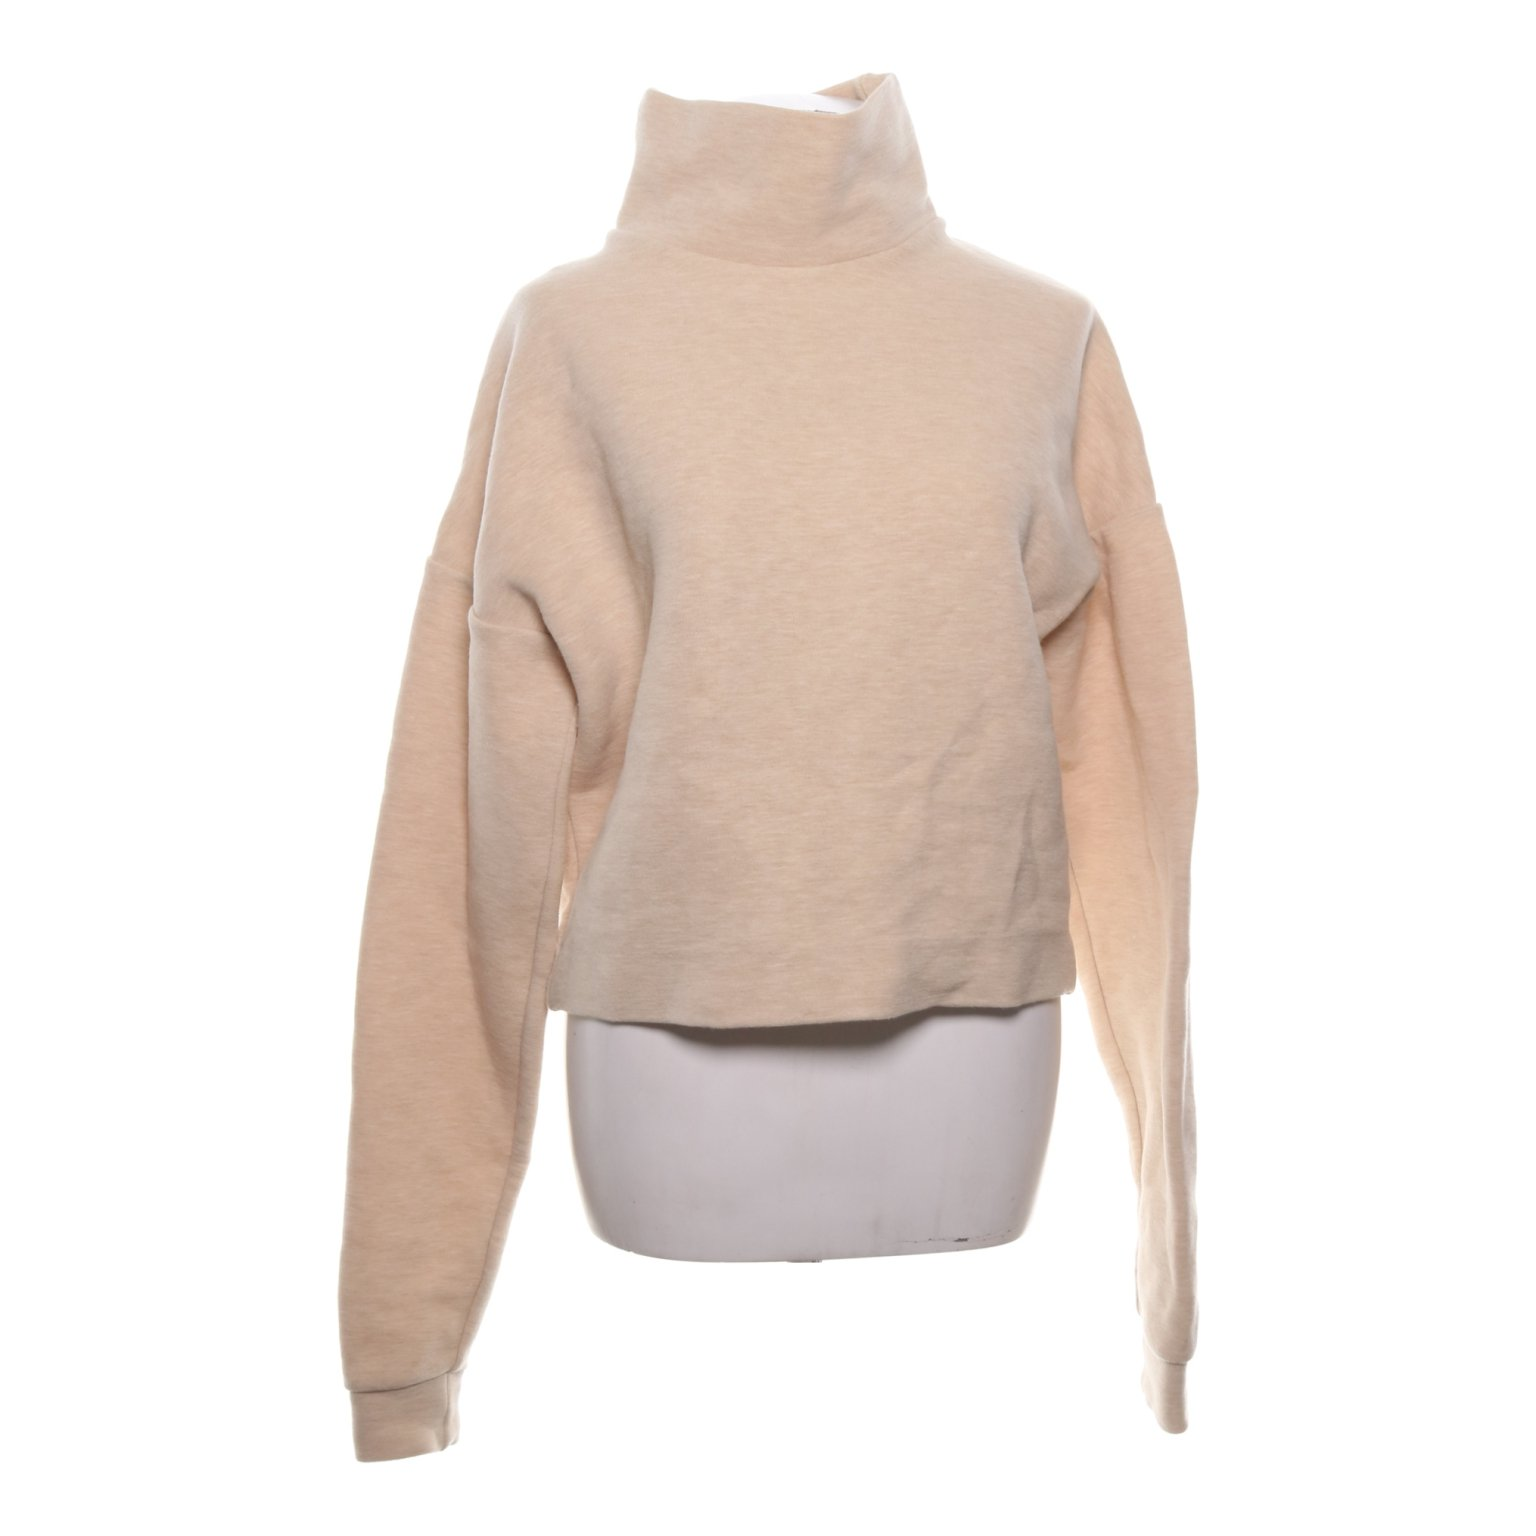 COS, Polotröja, Strl: XS, Beige, Bomull/Polyester